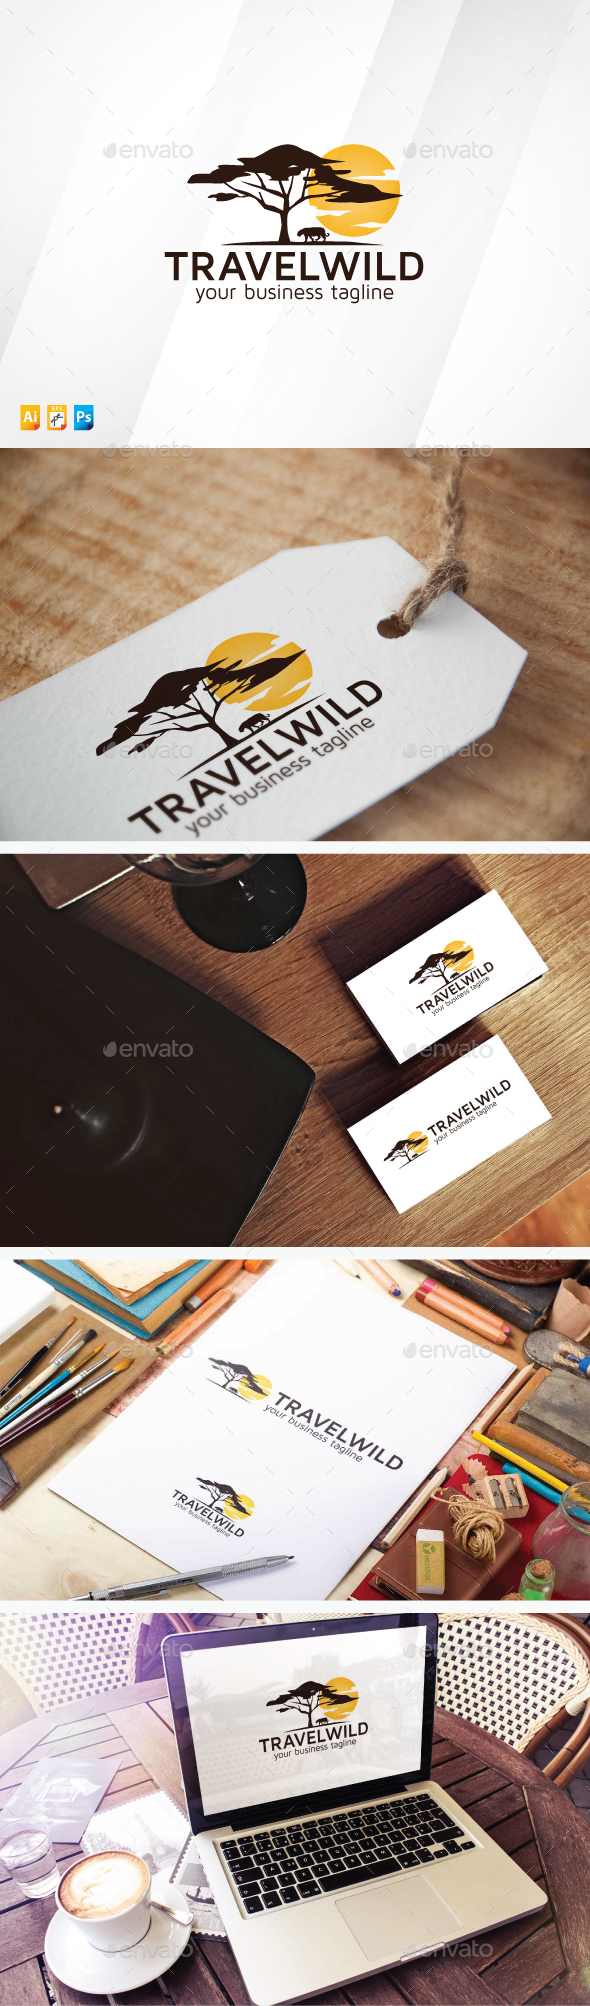 Travel Wild - Nature Logo Templates